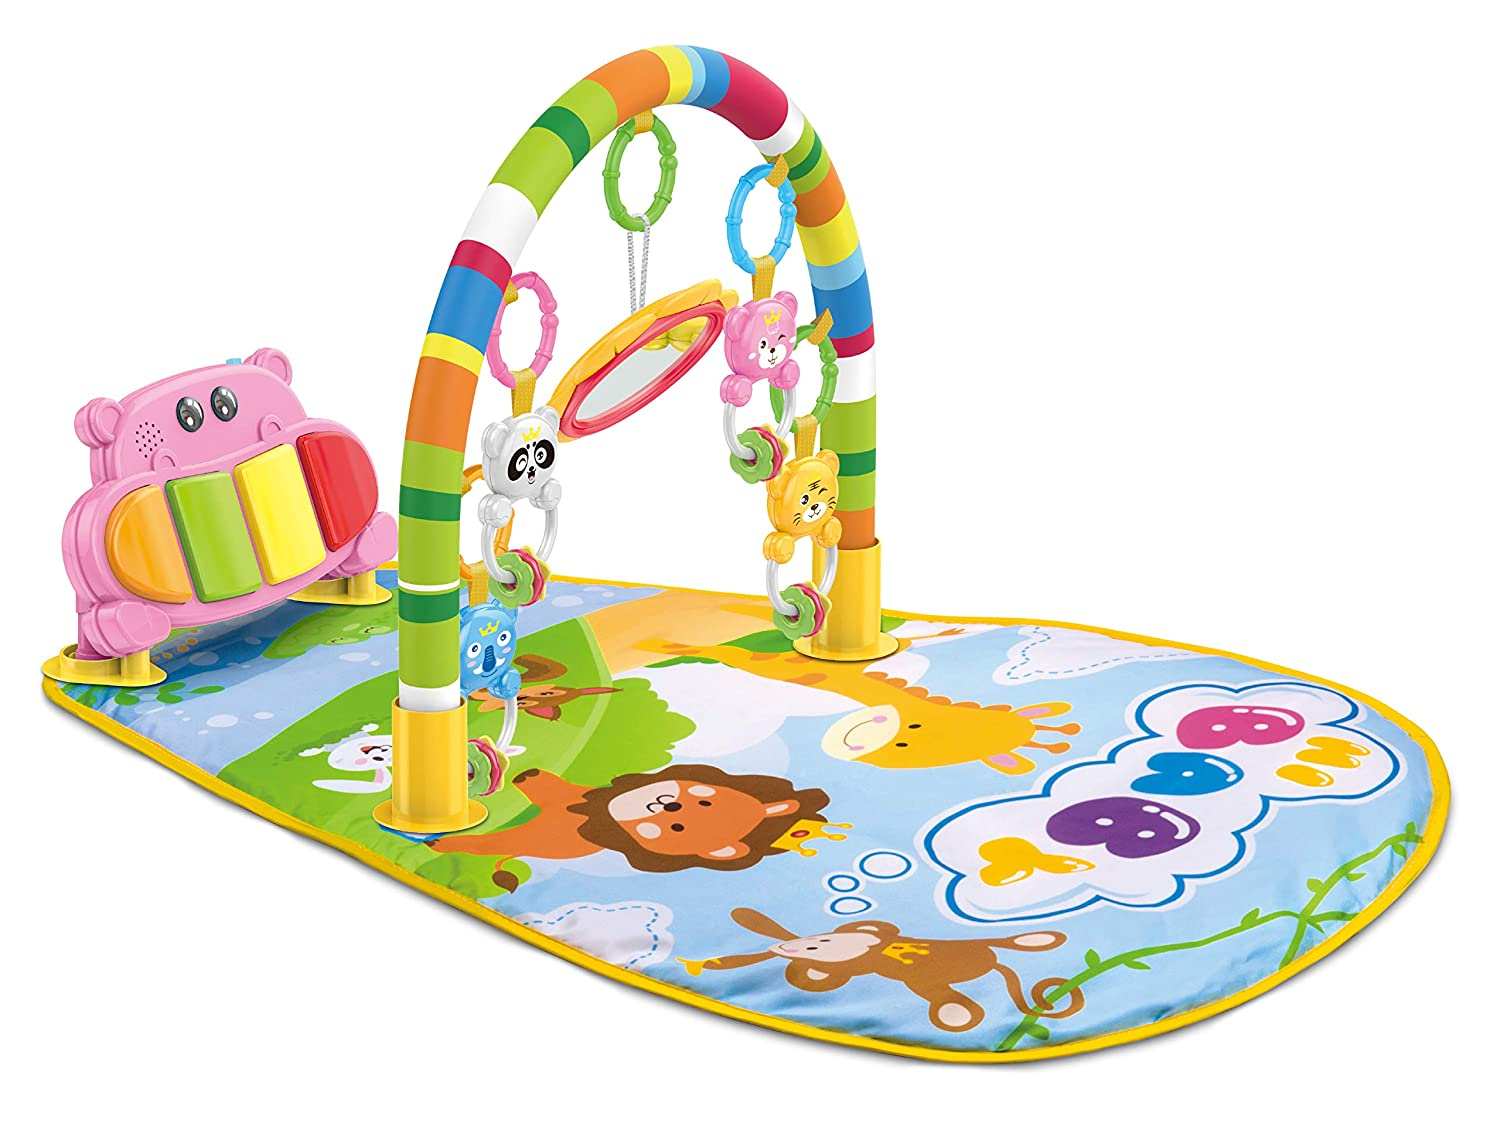 Teeny Fish Baby Piano Play Gym Mat with Activity Centre, Music and Sounds, 0-9 Months - Pink Tenny Fish